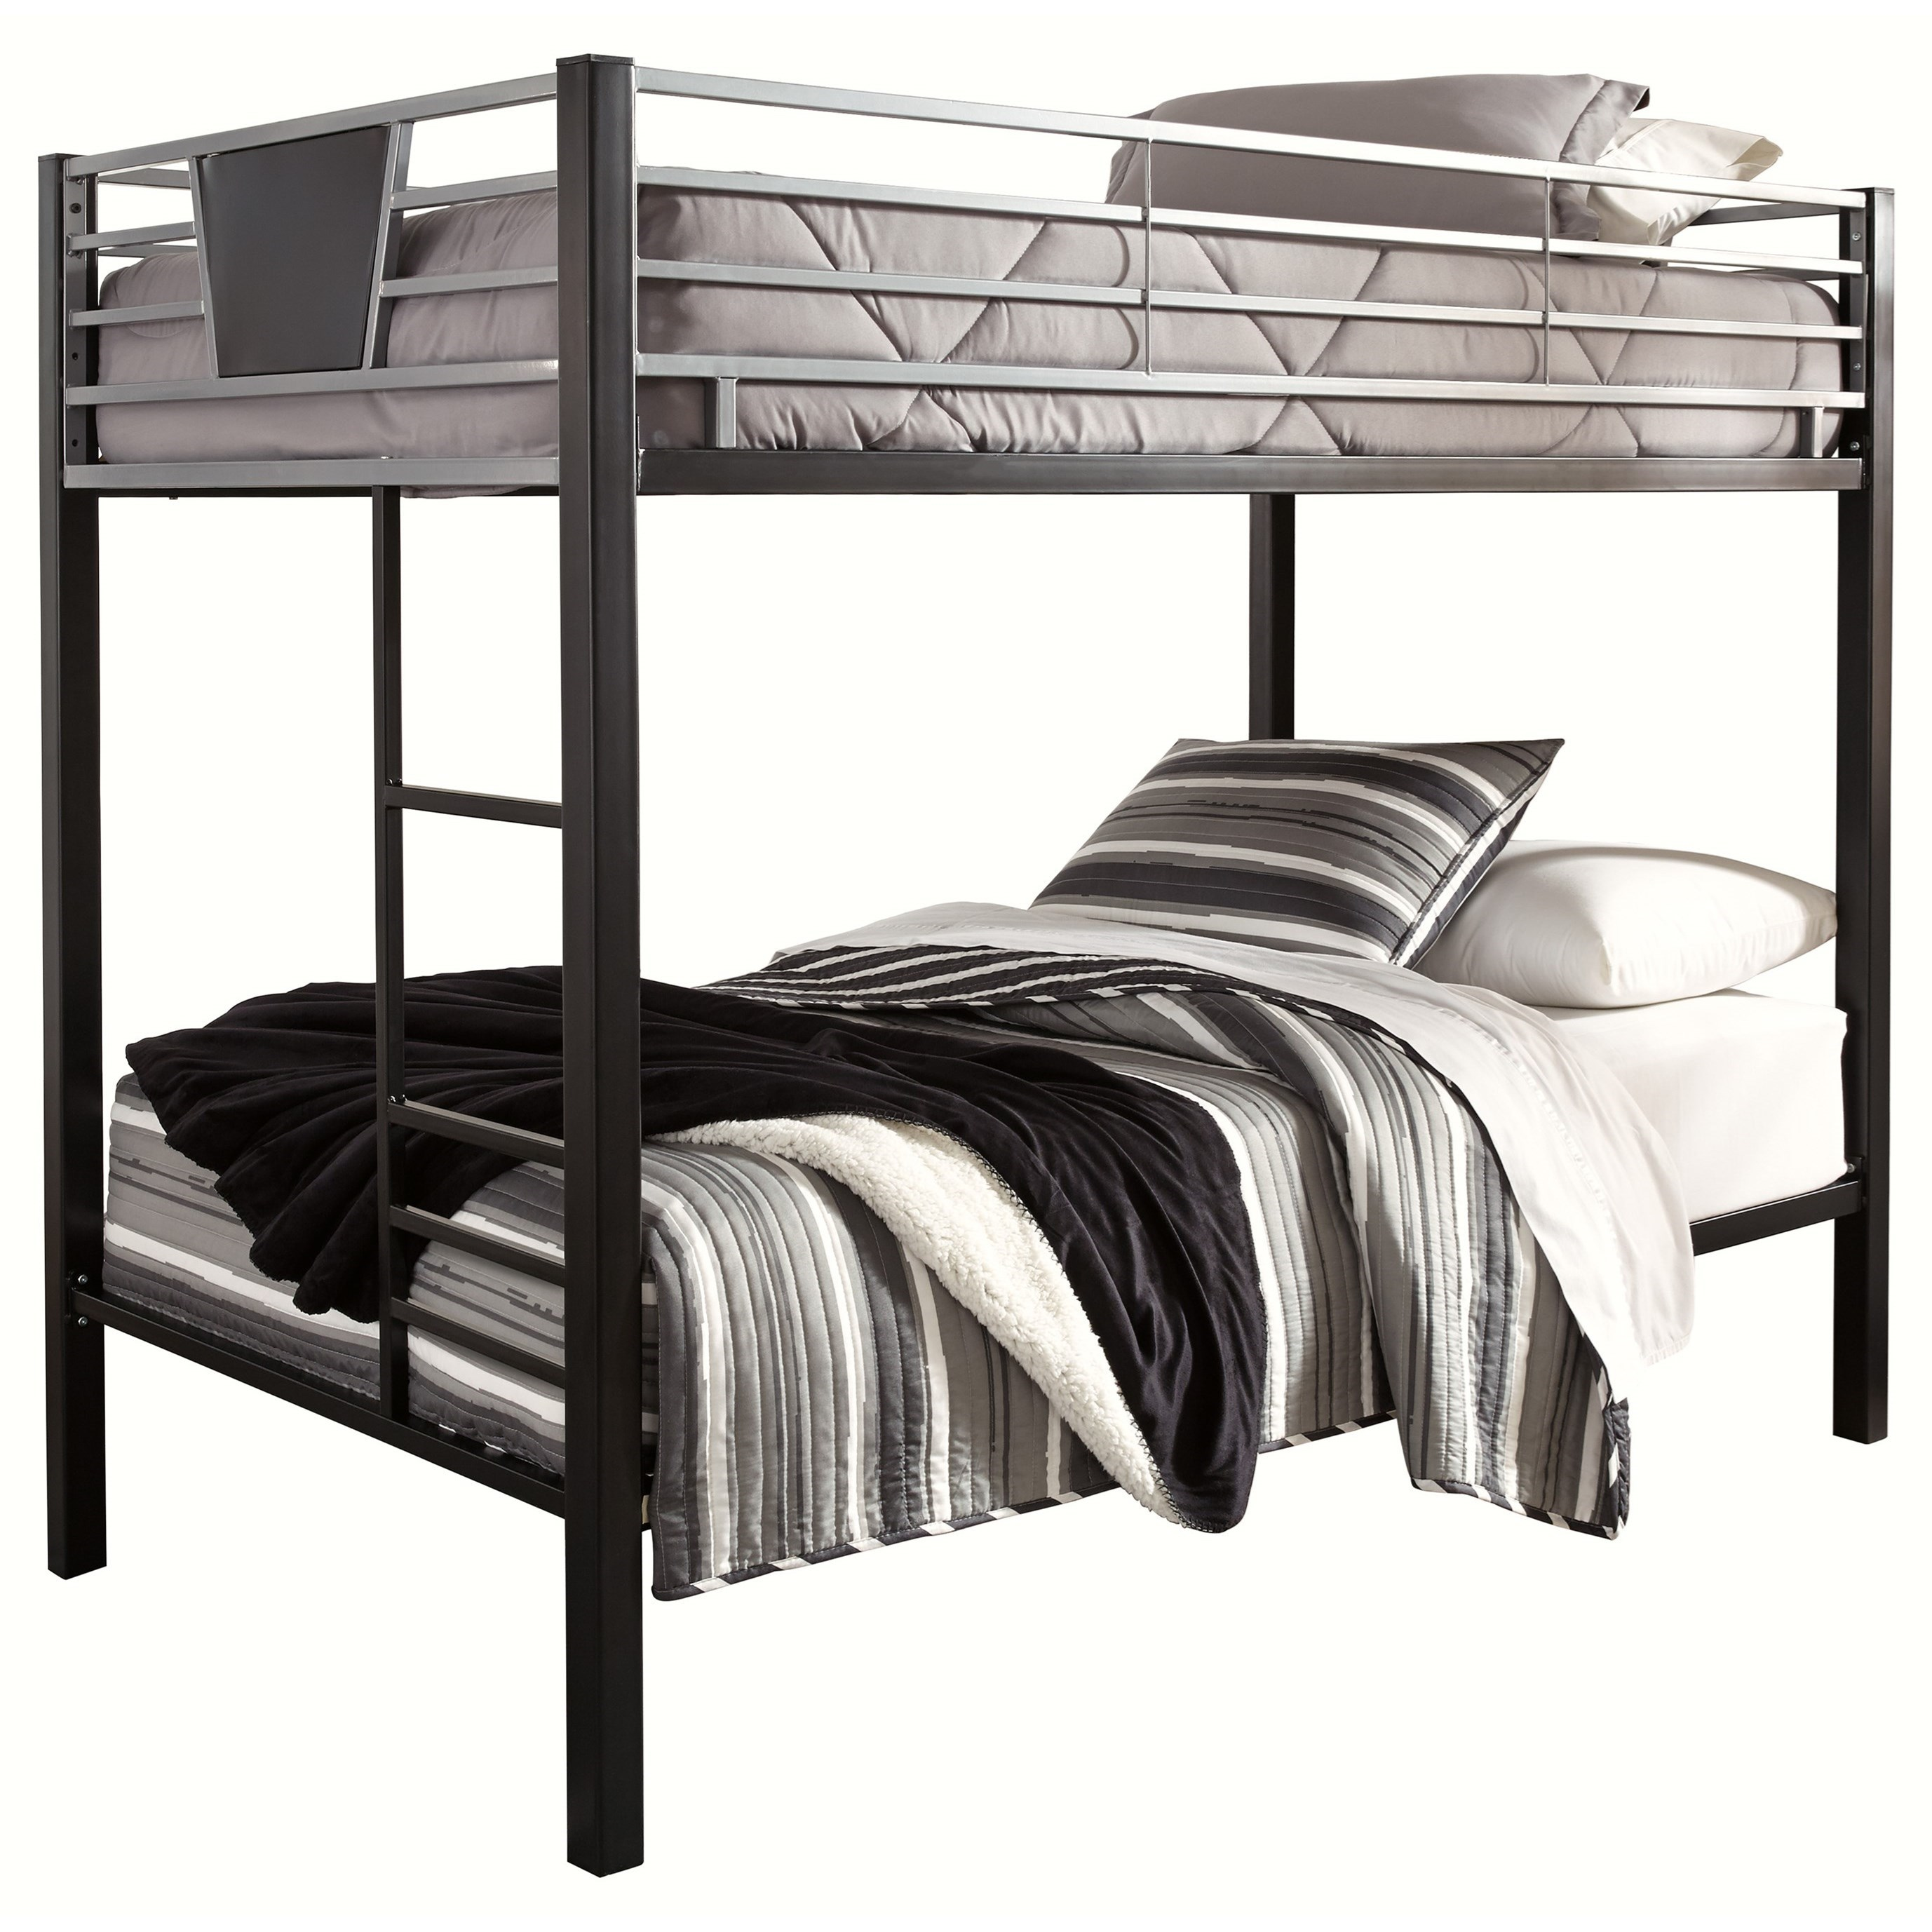 Dinsmore Twin/Twin Bunk Bed by Signature Design by Ashley at HomeWorld Furniture